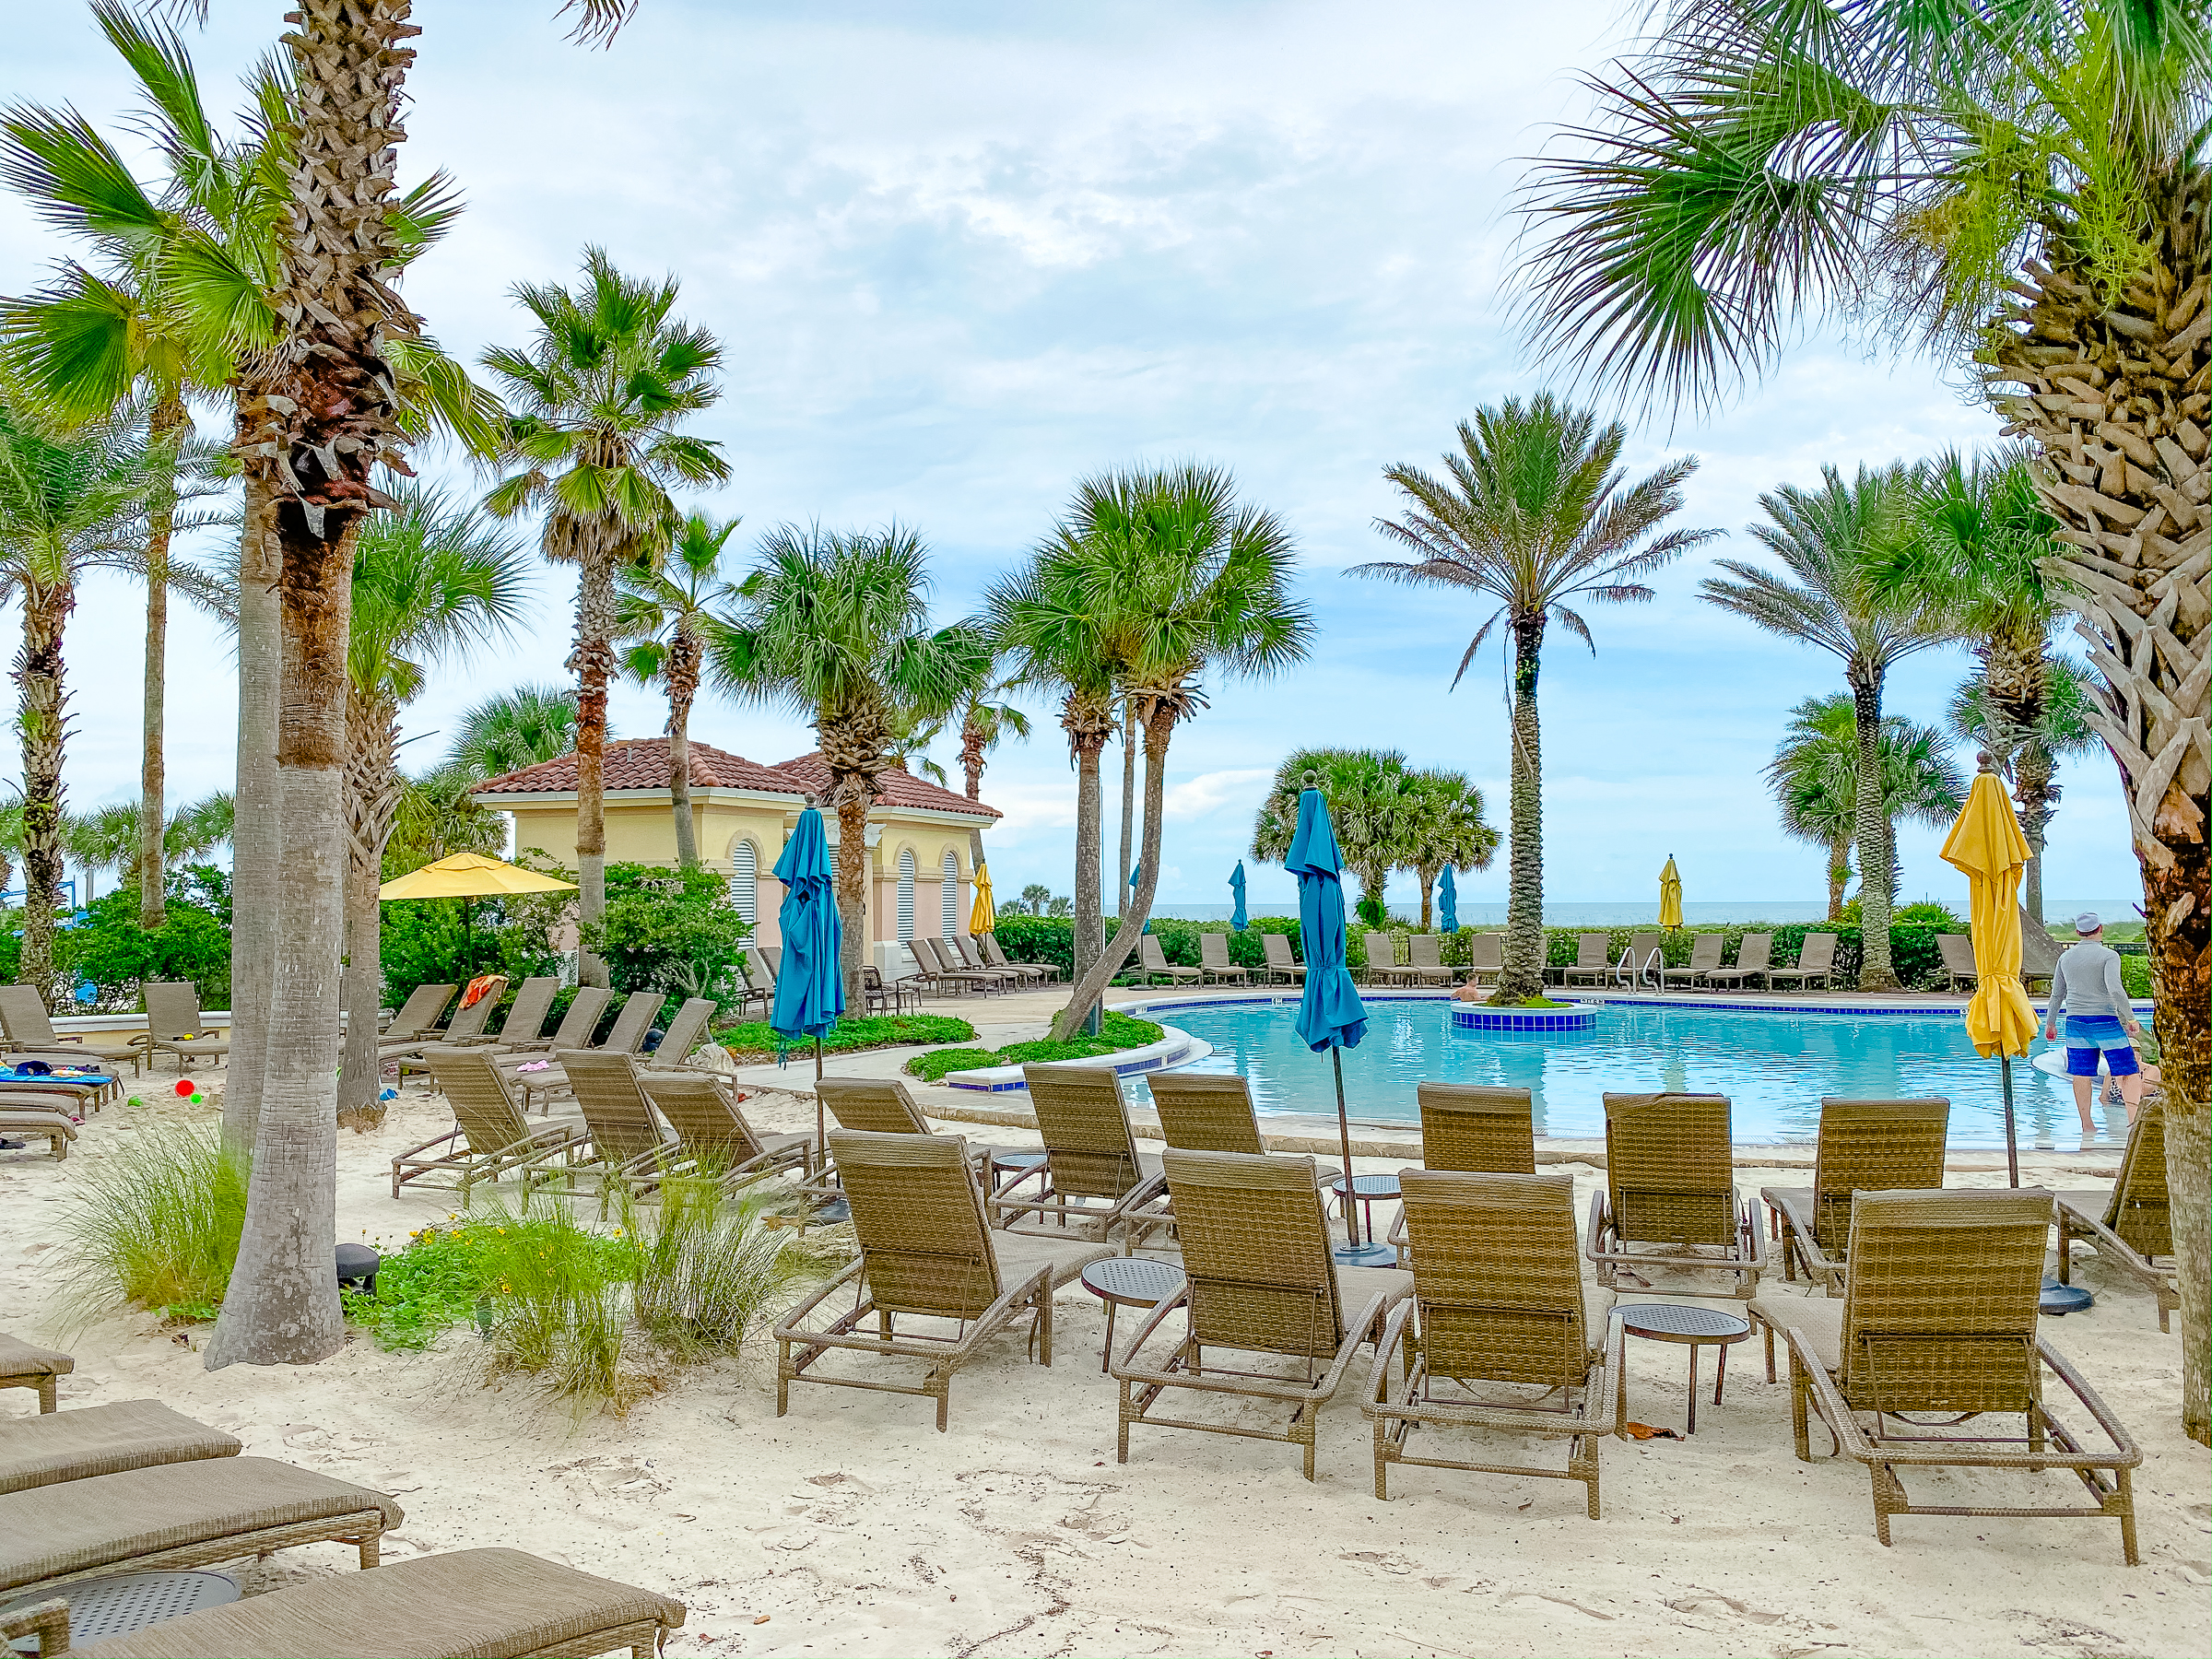 zero-entry pool at Hammock Beach